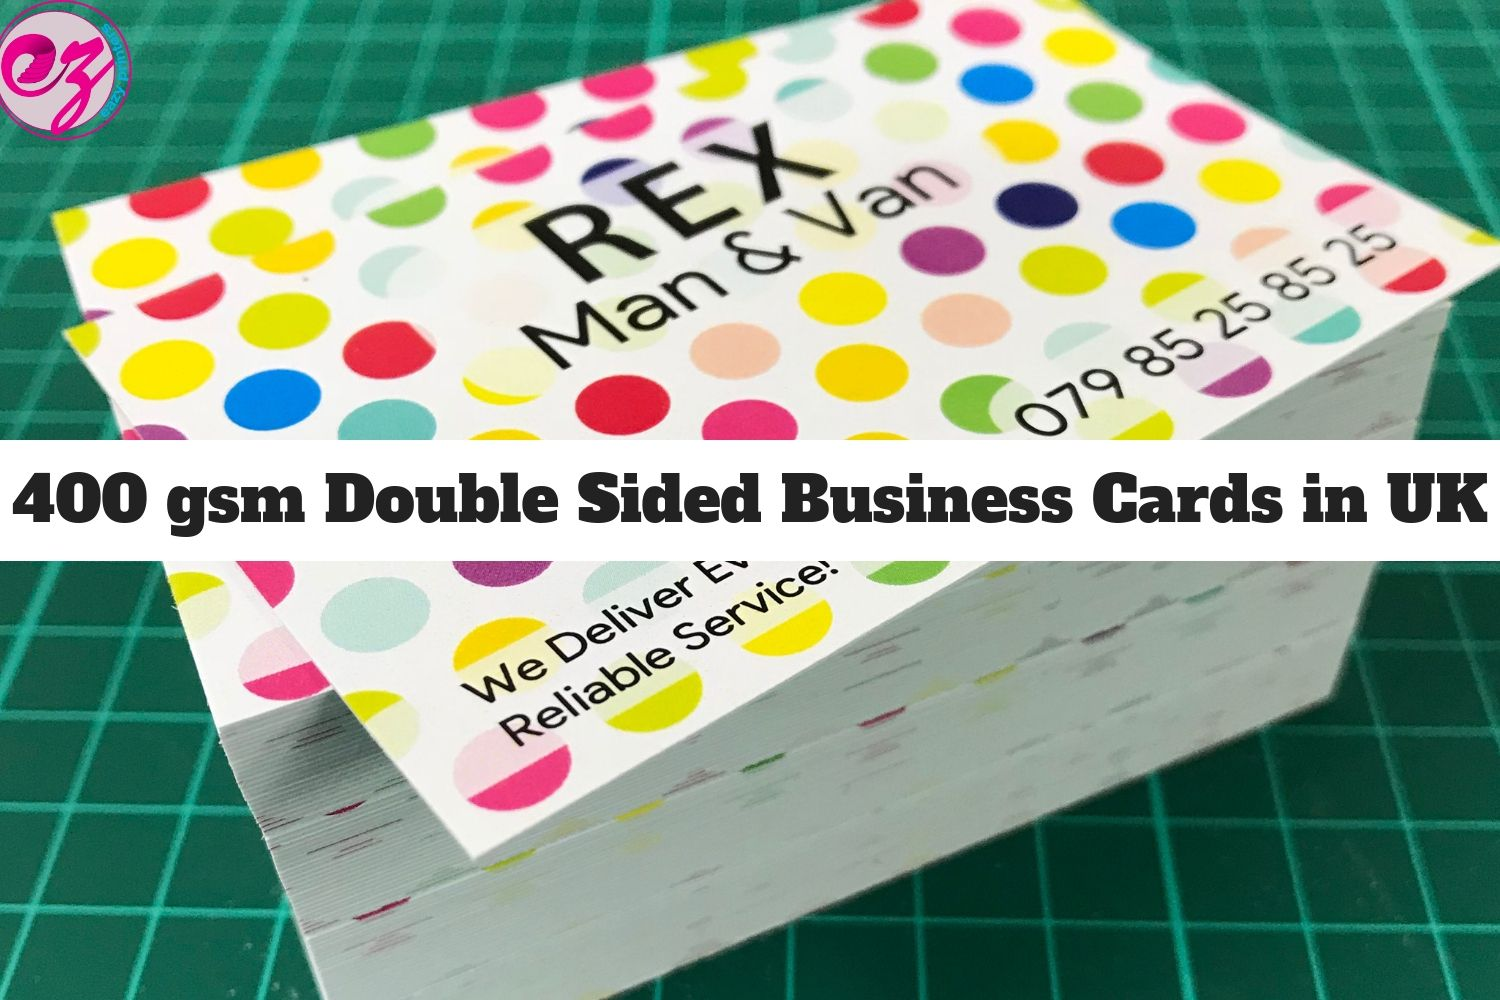 Uncoated Business Cards Printing London Ez Printers Uncoated Business Cards Printing Business Cards Double Sided Business Cards